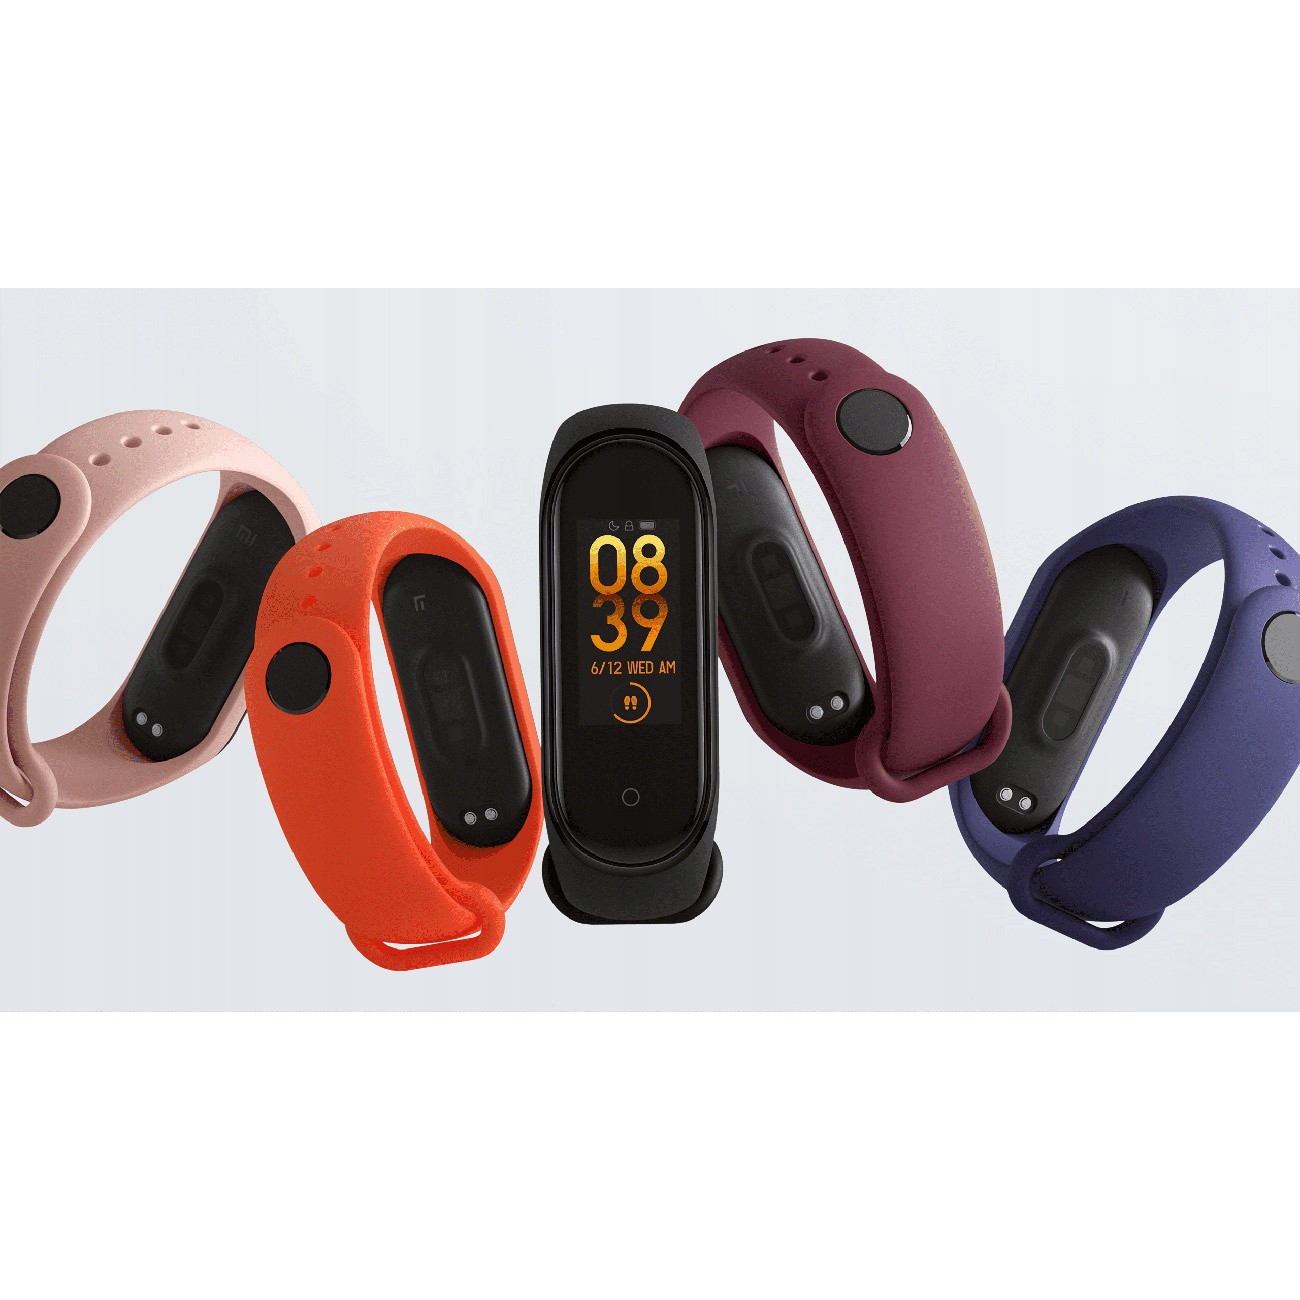 náramek Smart Xiaomi Mi Band 4 5ATM AMOLED HR 135mAh megamix.shop